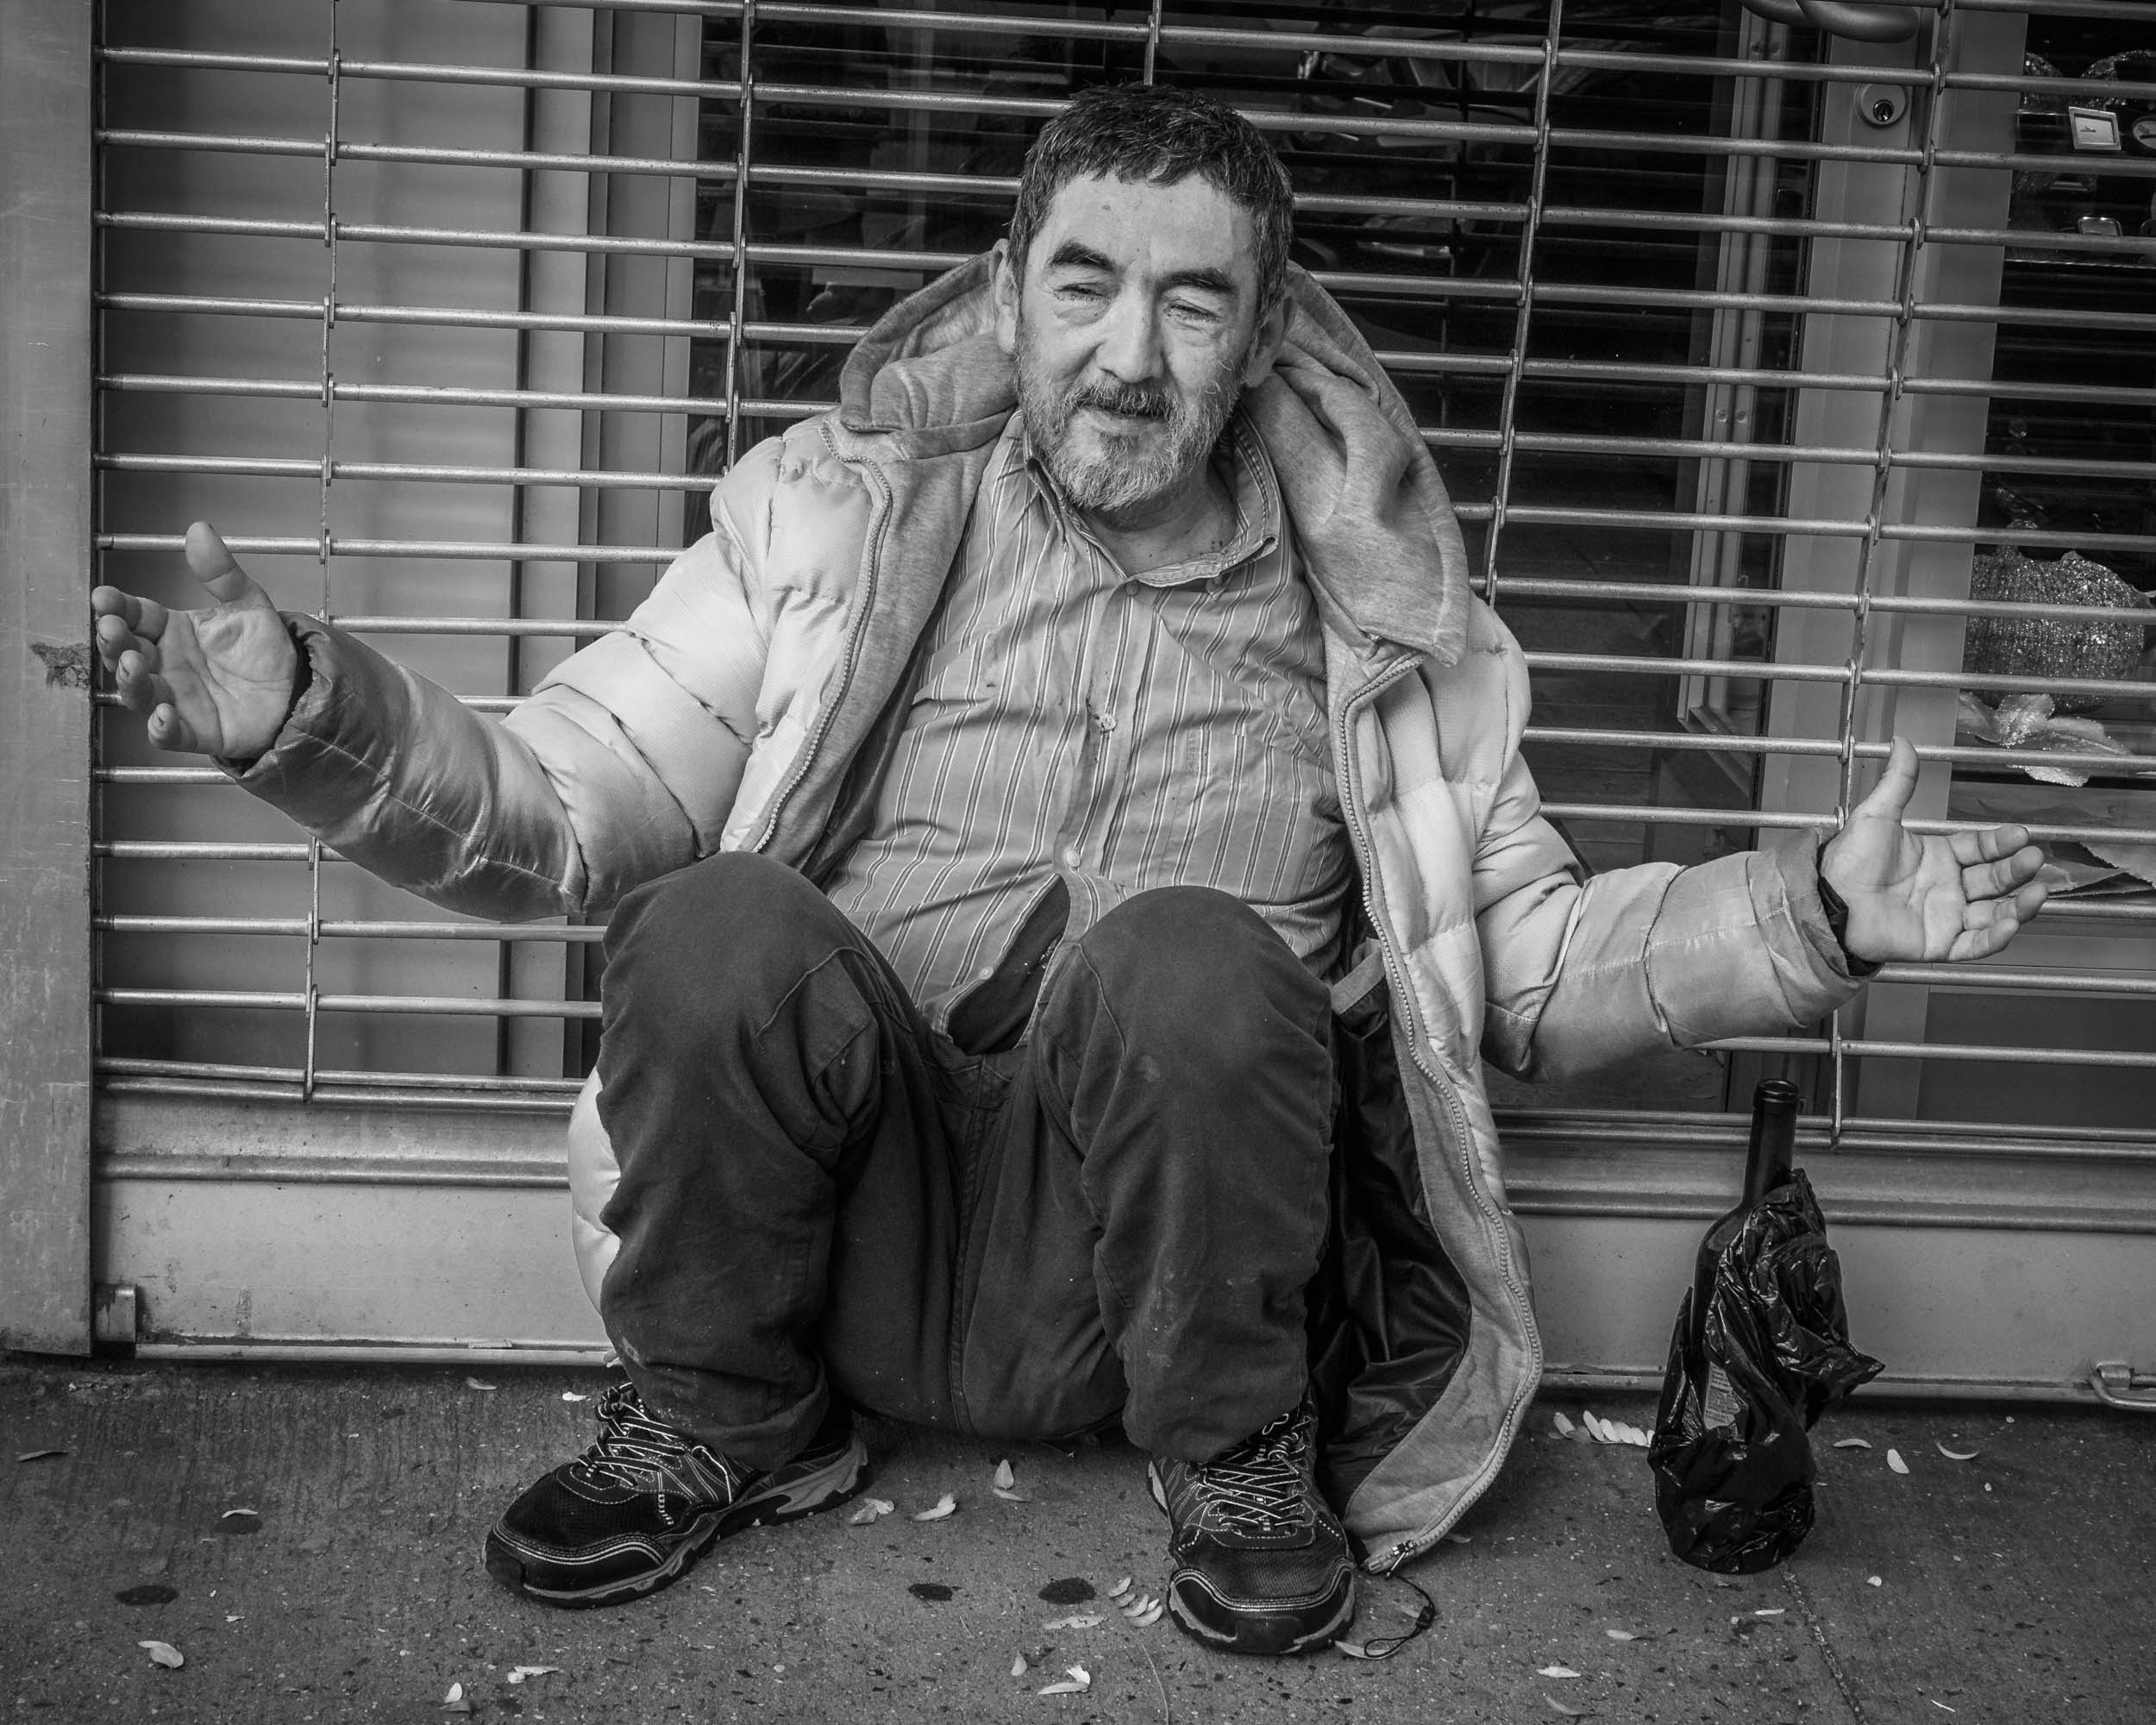 I do not typically take pictures of a homeless person, but this one was taken because he asked me to take it. He definitely was posing.